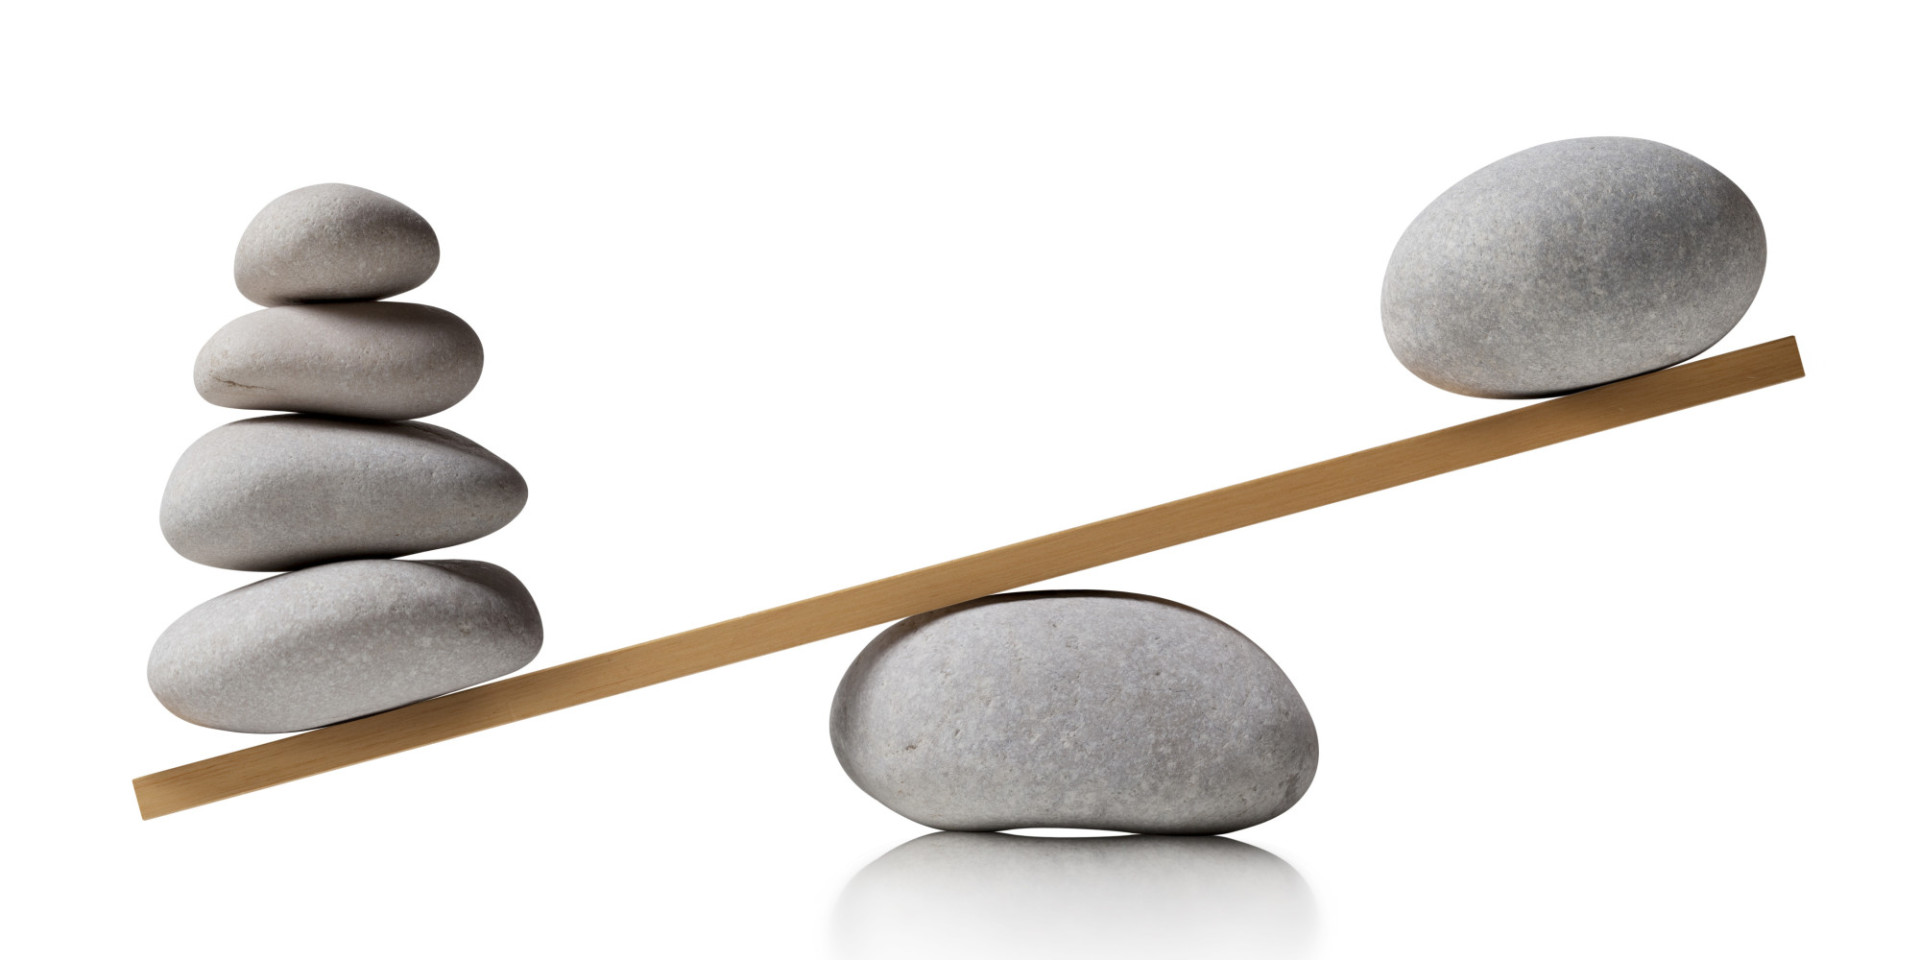 MYP Resources: 3. Rules of Balance